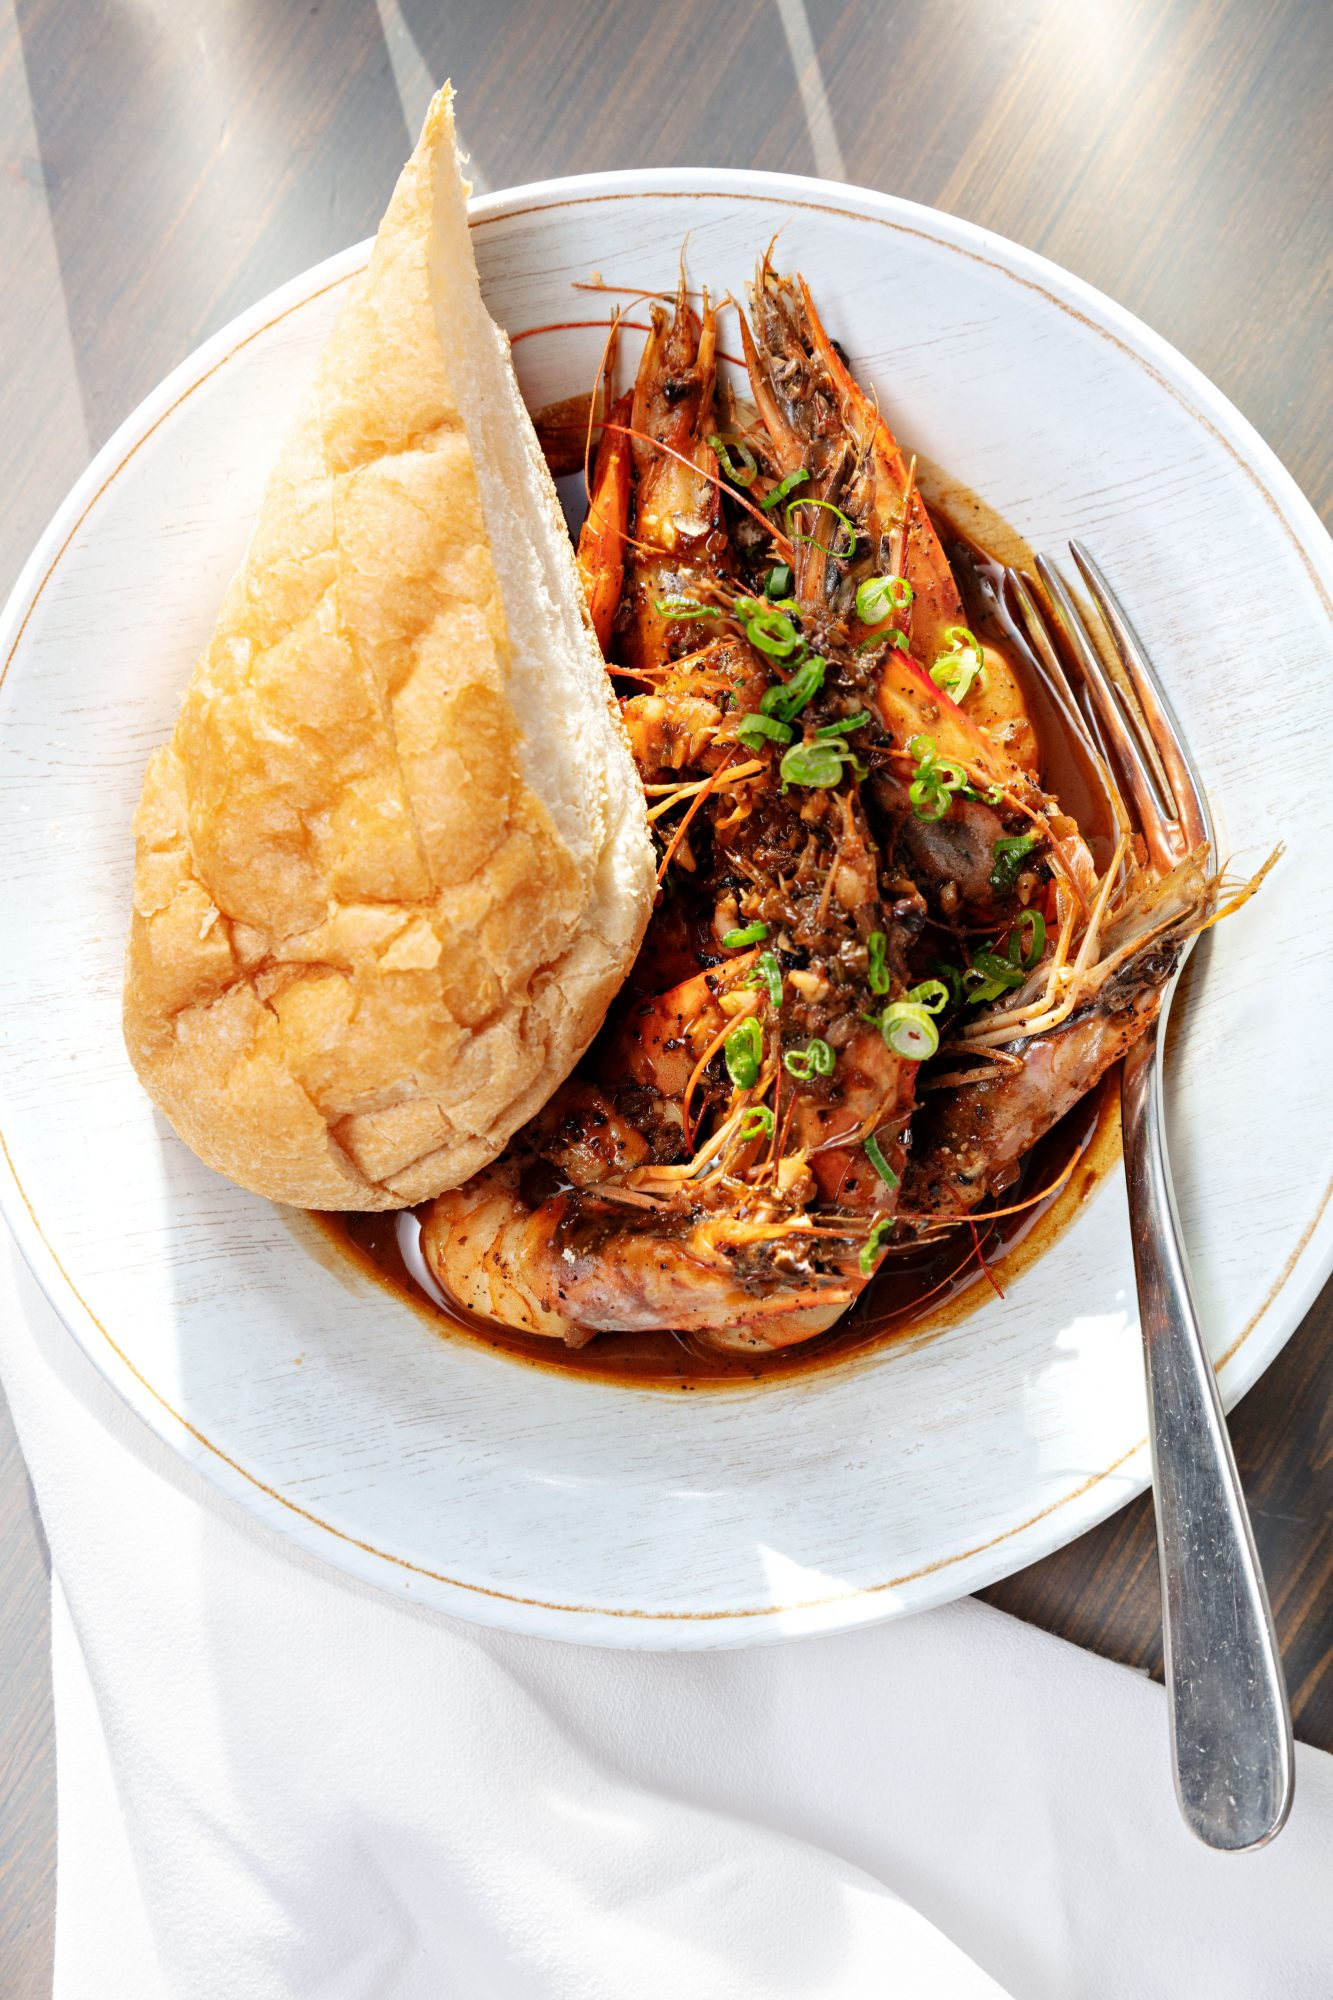 Rosemary BBQ Shrimp at Rosedale in New Orleans